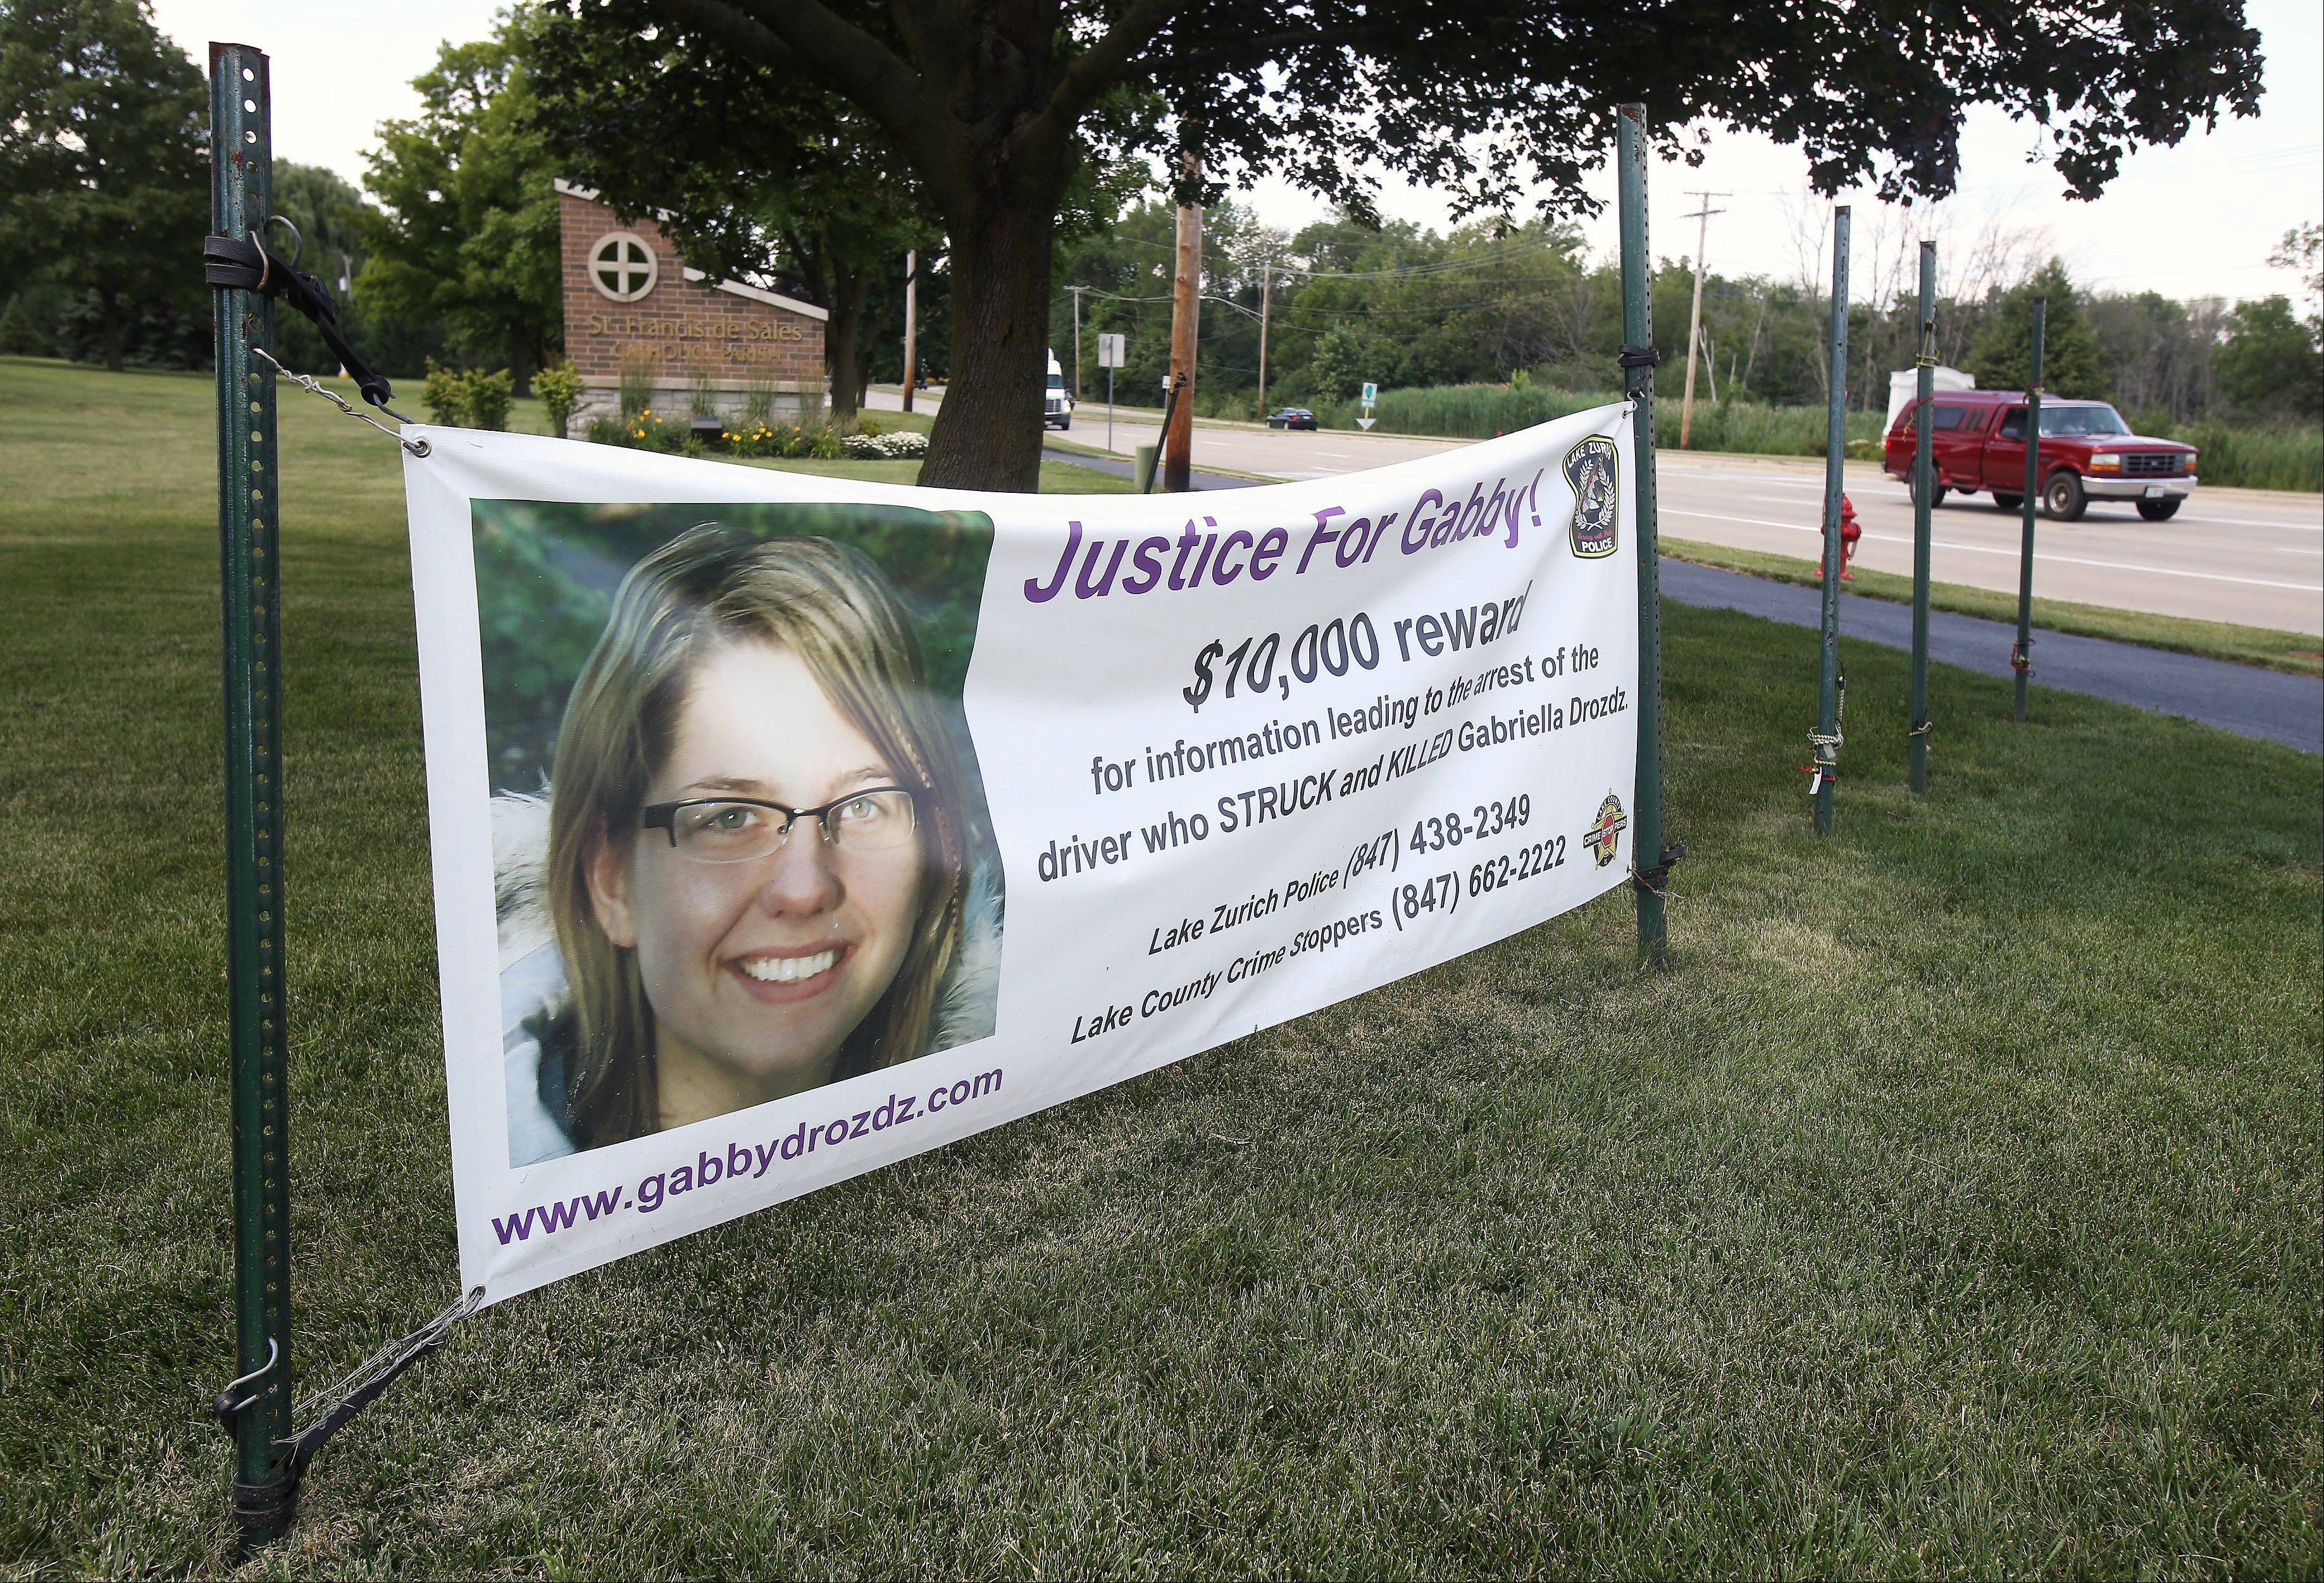 A banner seeking information about the hit-and-run crash that killed Gabriella Drozdz can be seen at Route 22 and Buesching Road in Lake Zurich. The crash occurred July 22, 2011, as Drozdz walked along Church Street to Alpine Fest at Lion Fred Blau Park.